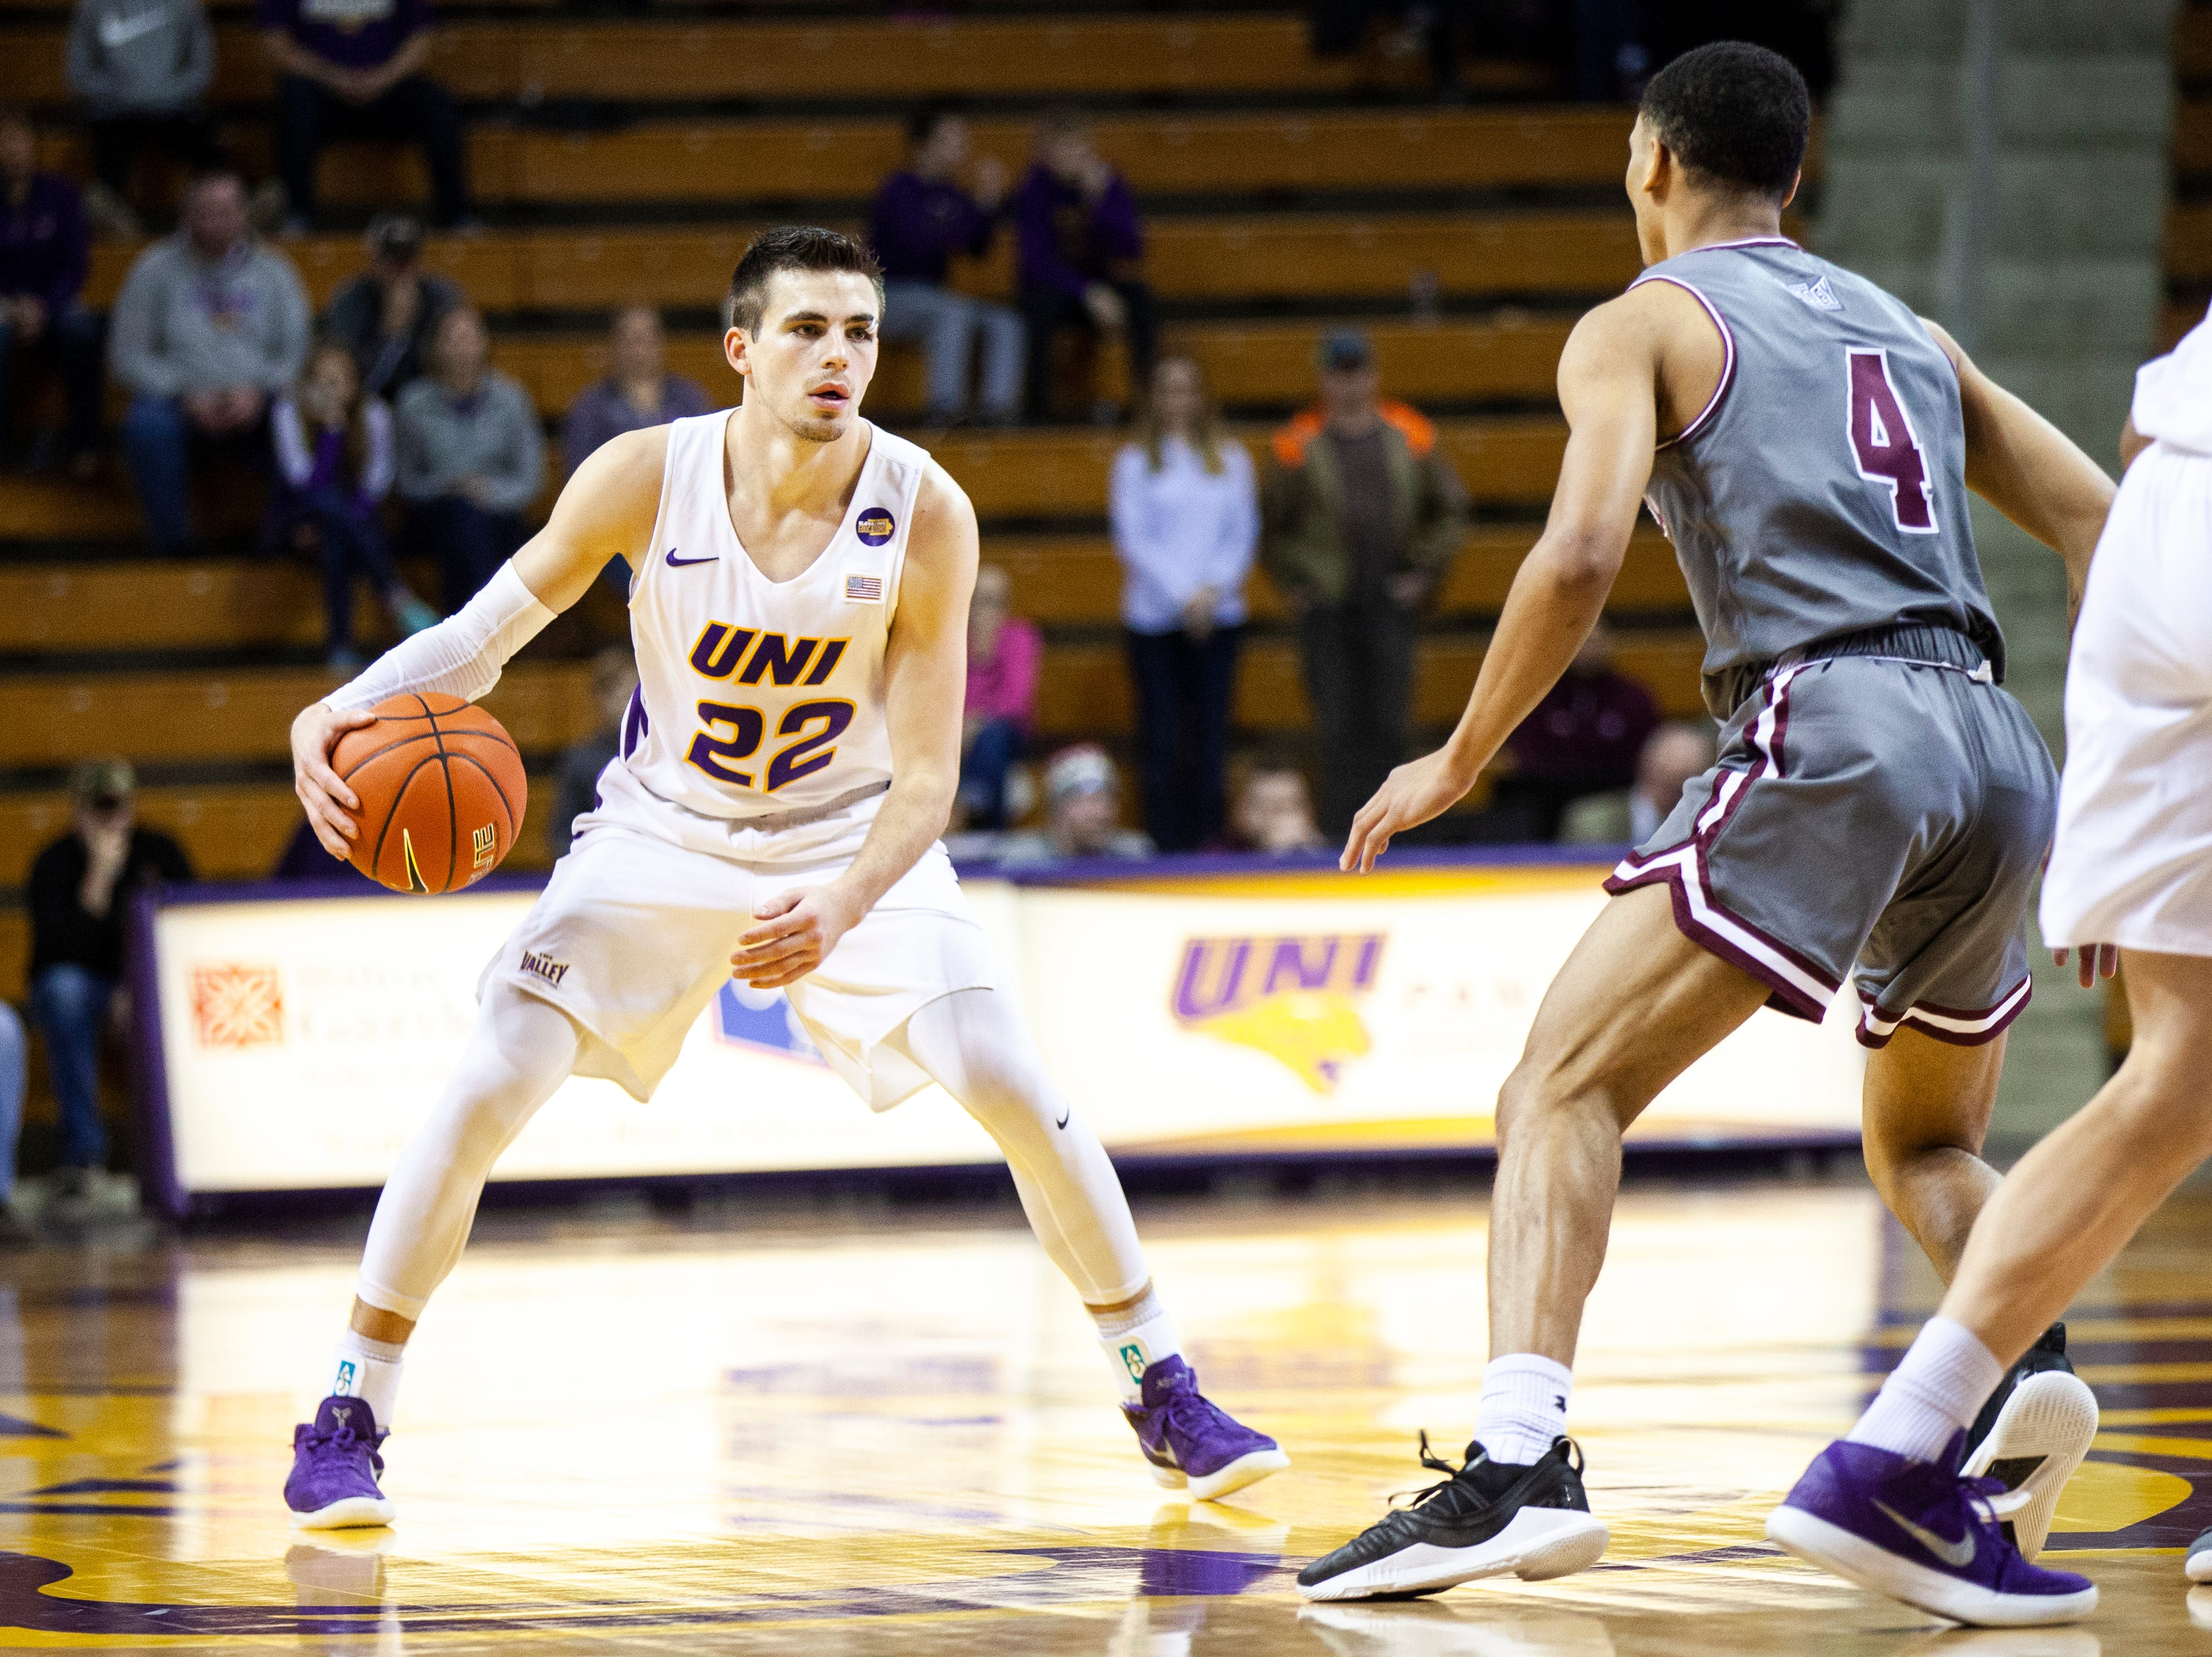 Northern Iowa guard Wyatt Lohaus (22) looks to pass during a NCAA Missouri Valley Conference men's basketball game on Saturday, Jan. 5, 2019, at the McLeod Center in Cedar Falls, Iowa.